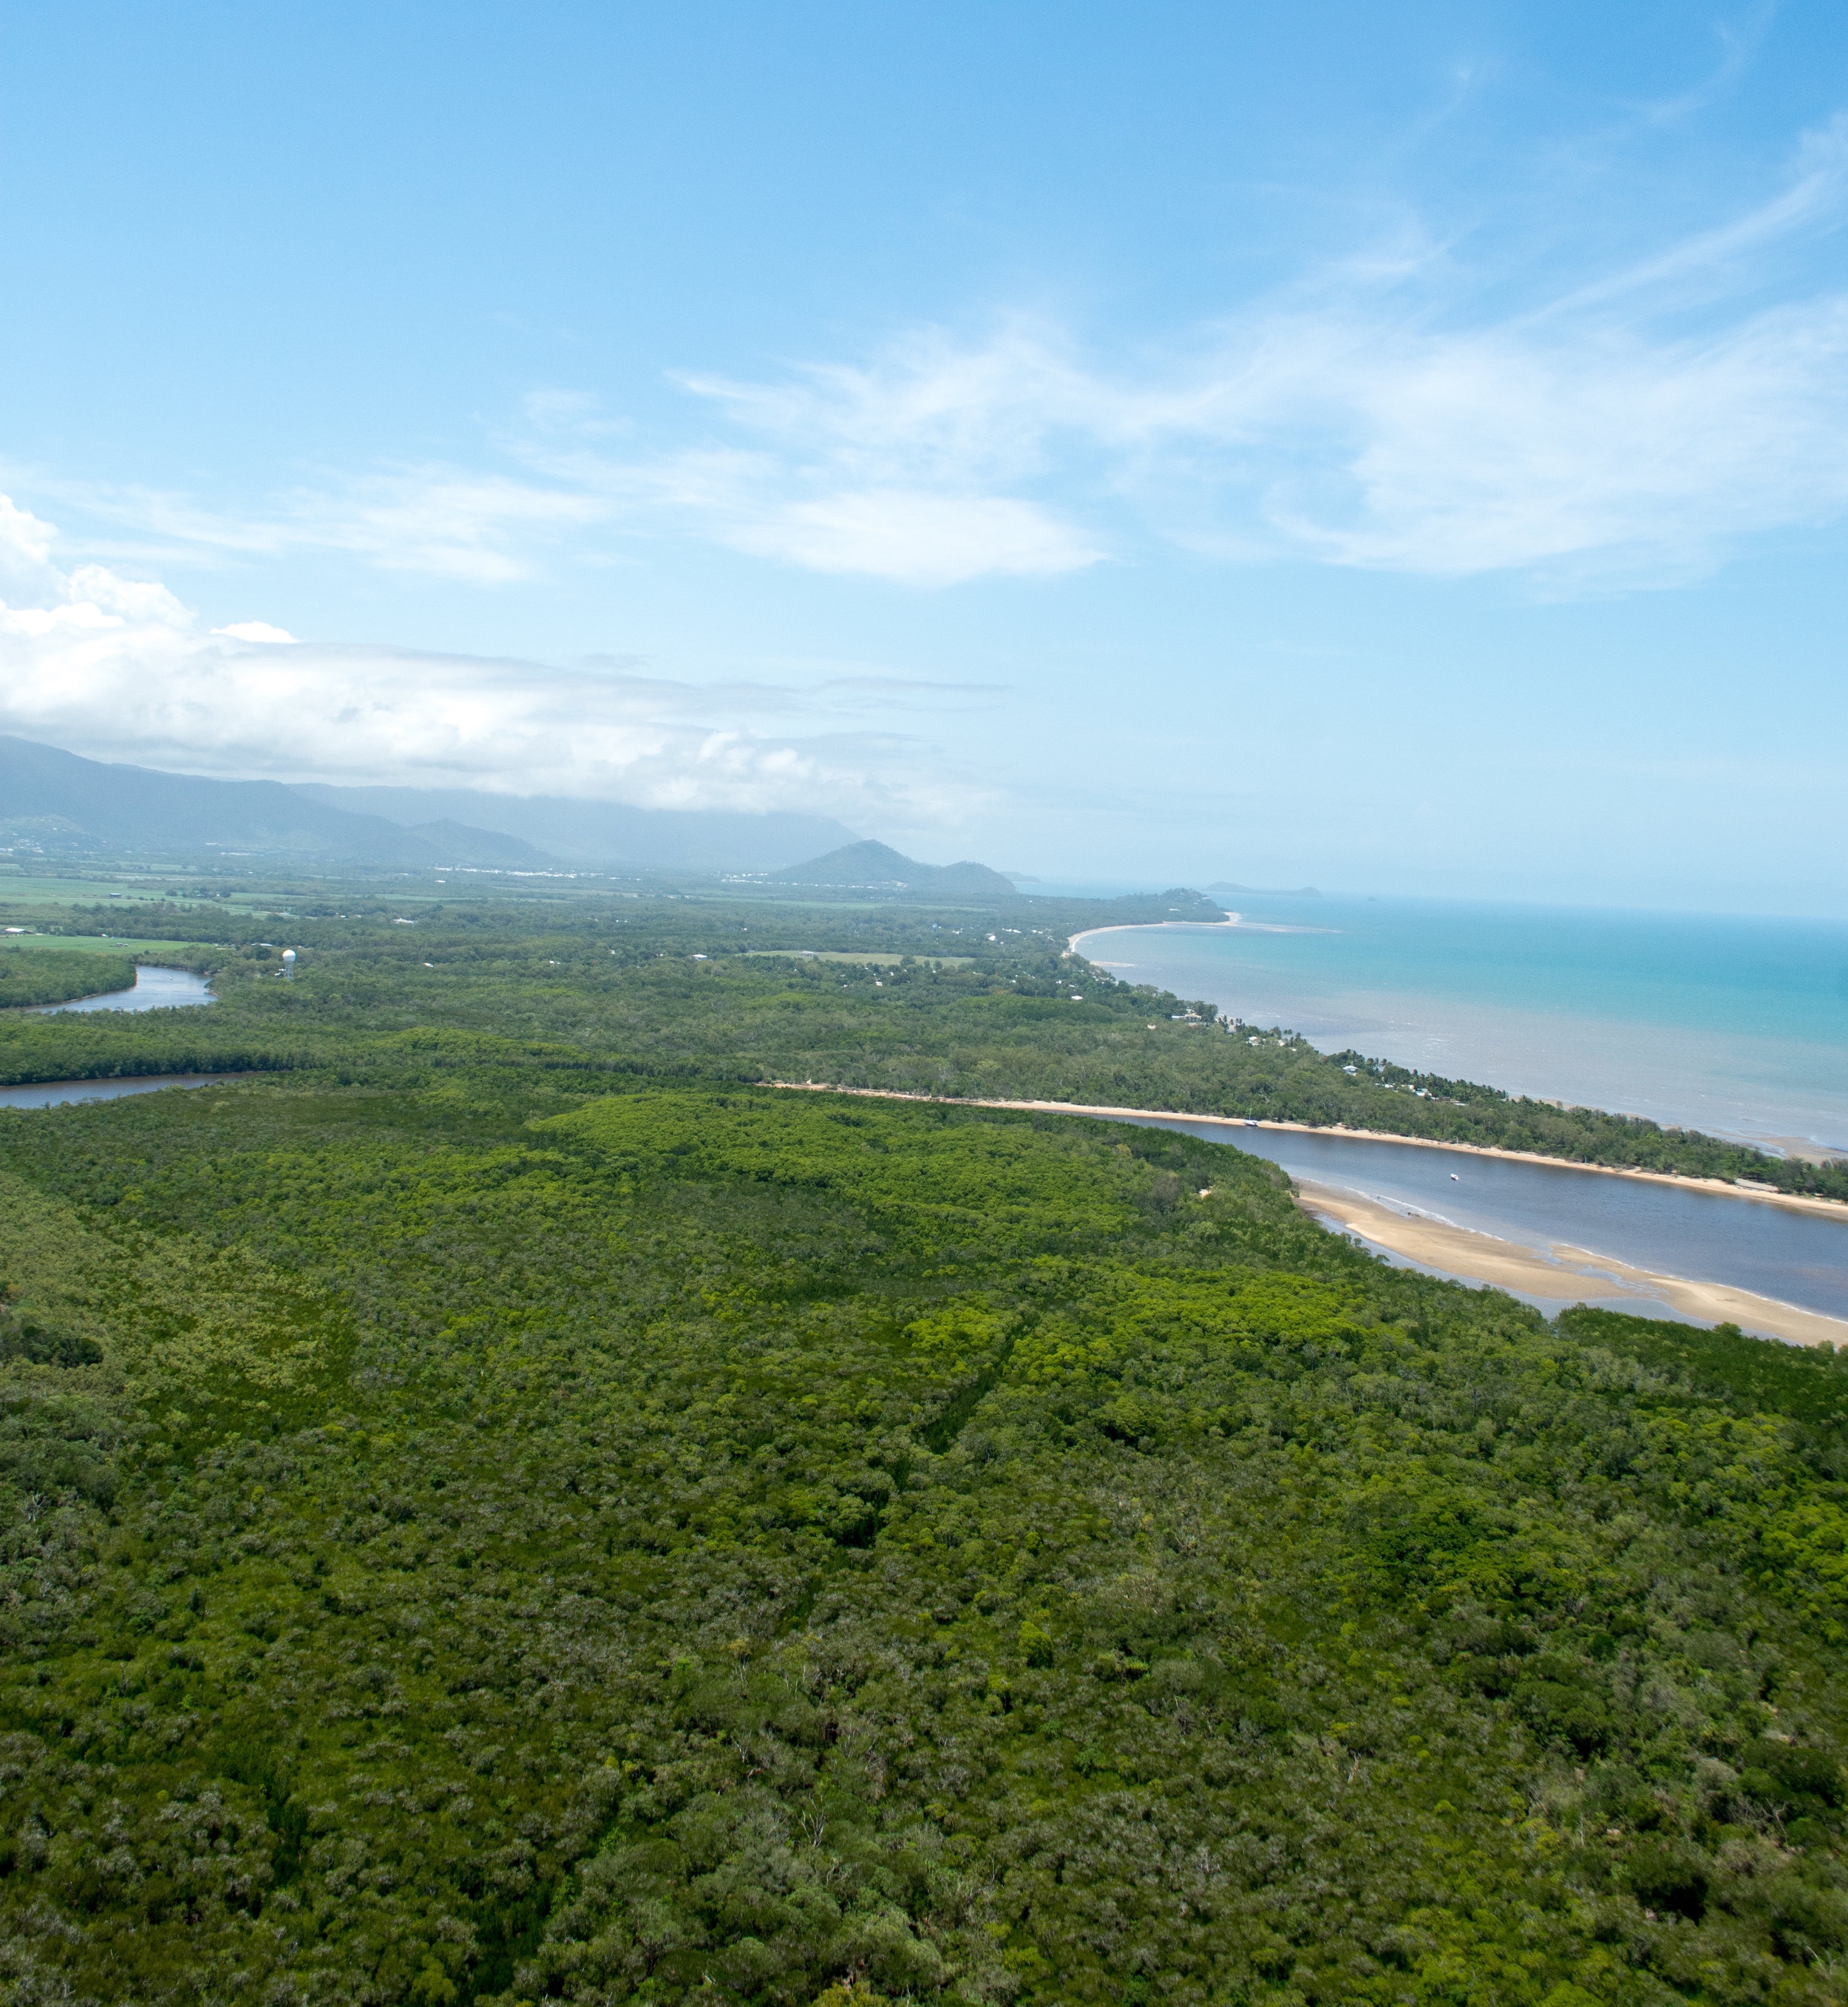 Aerial View of North of Cairns, Australia